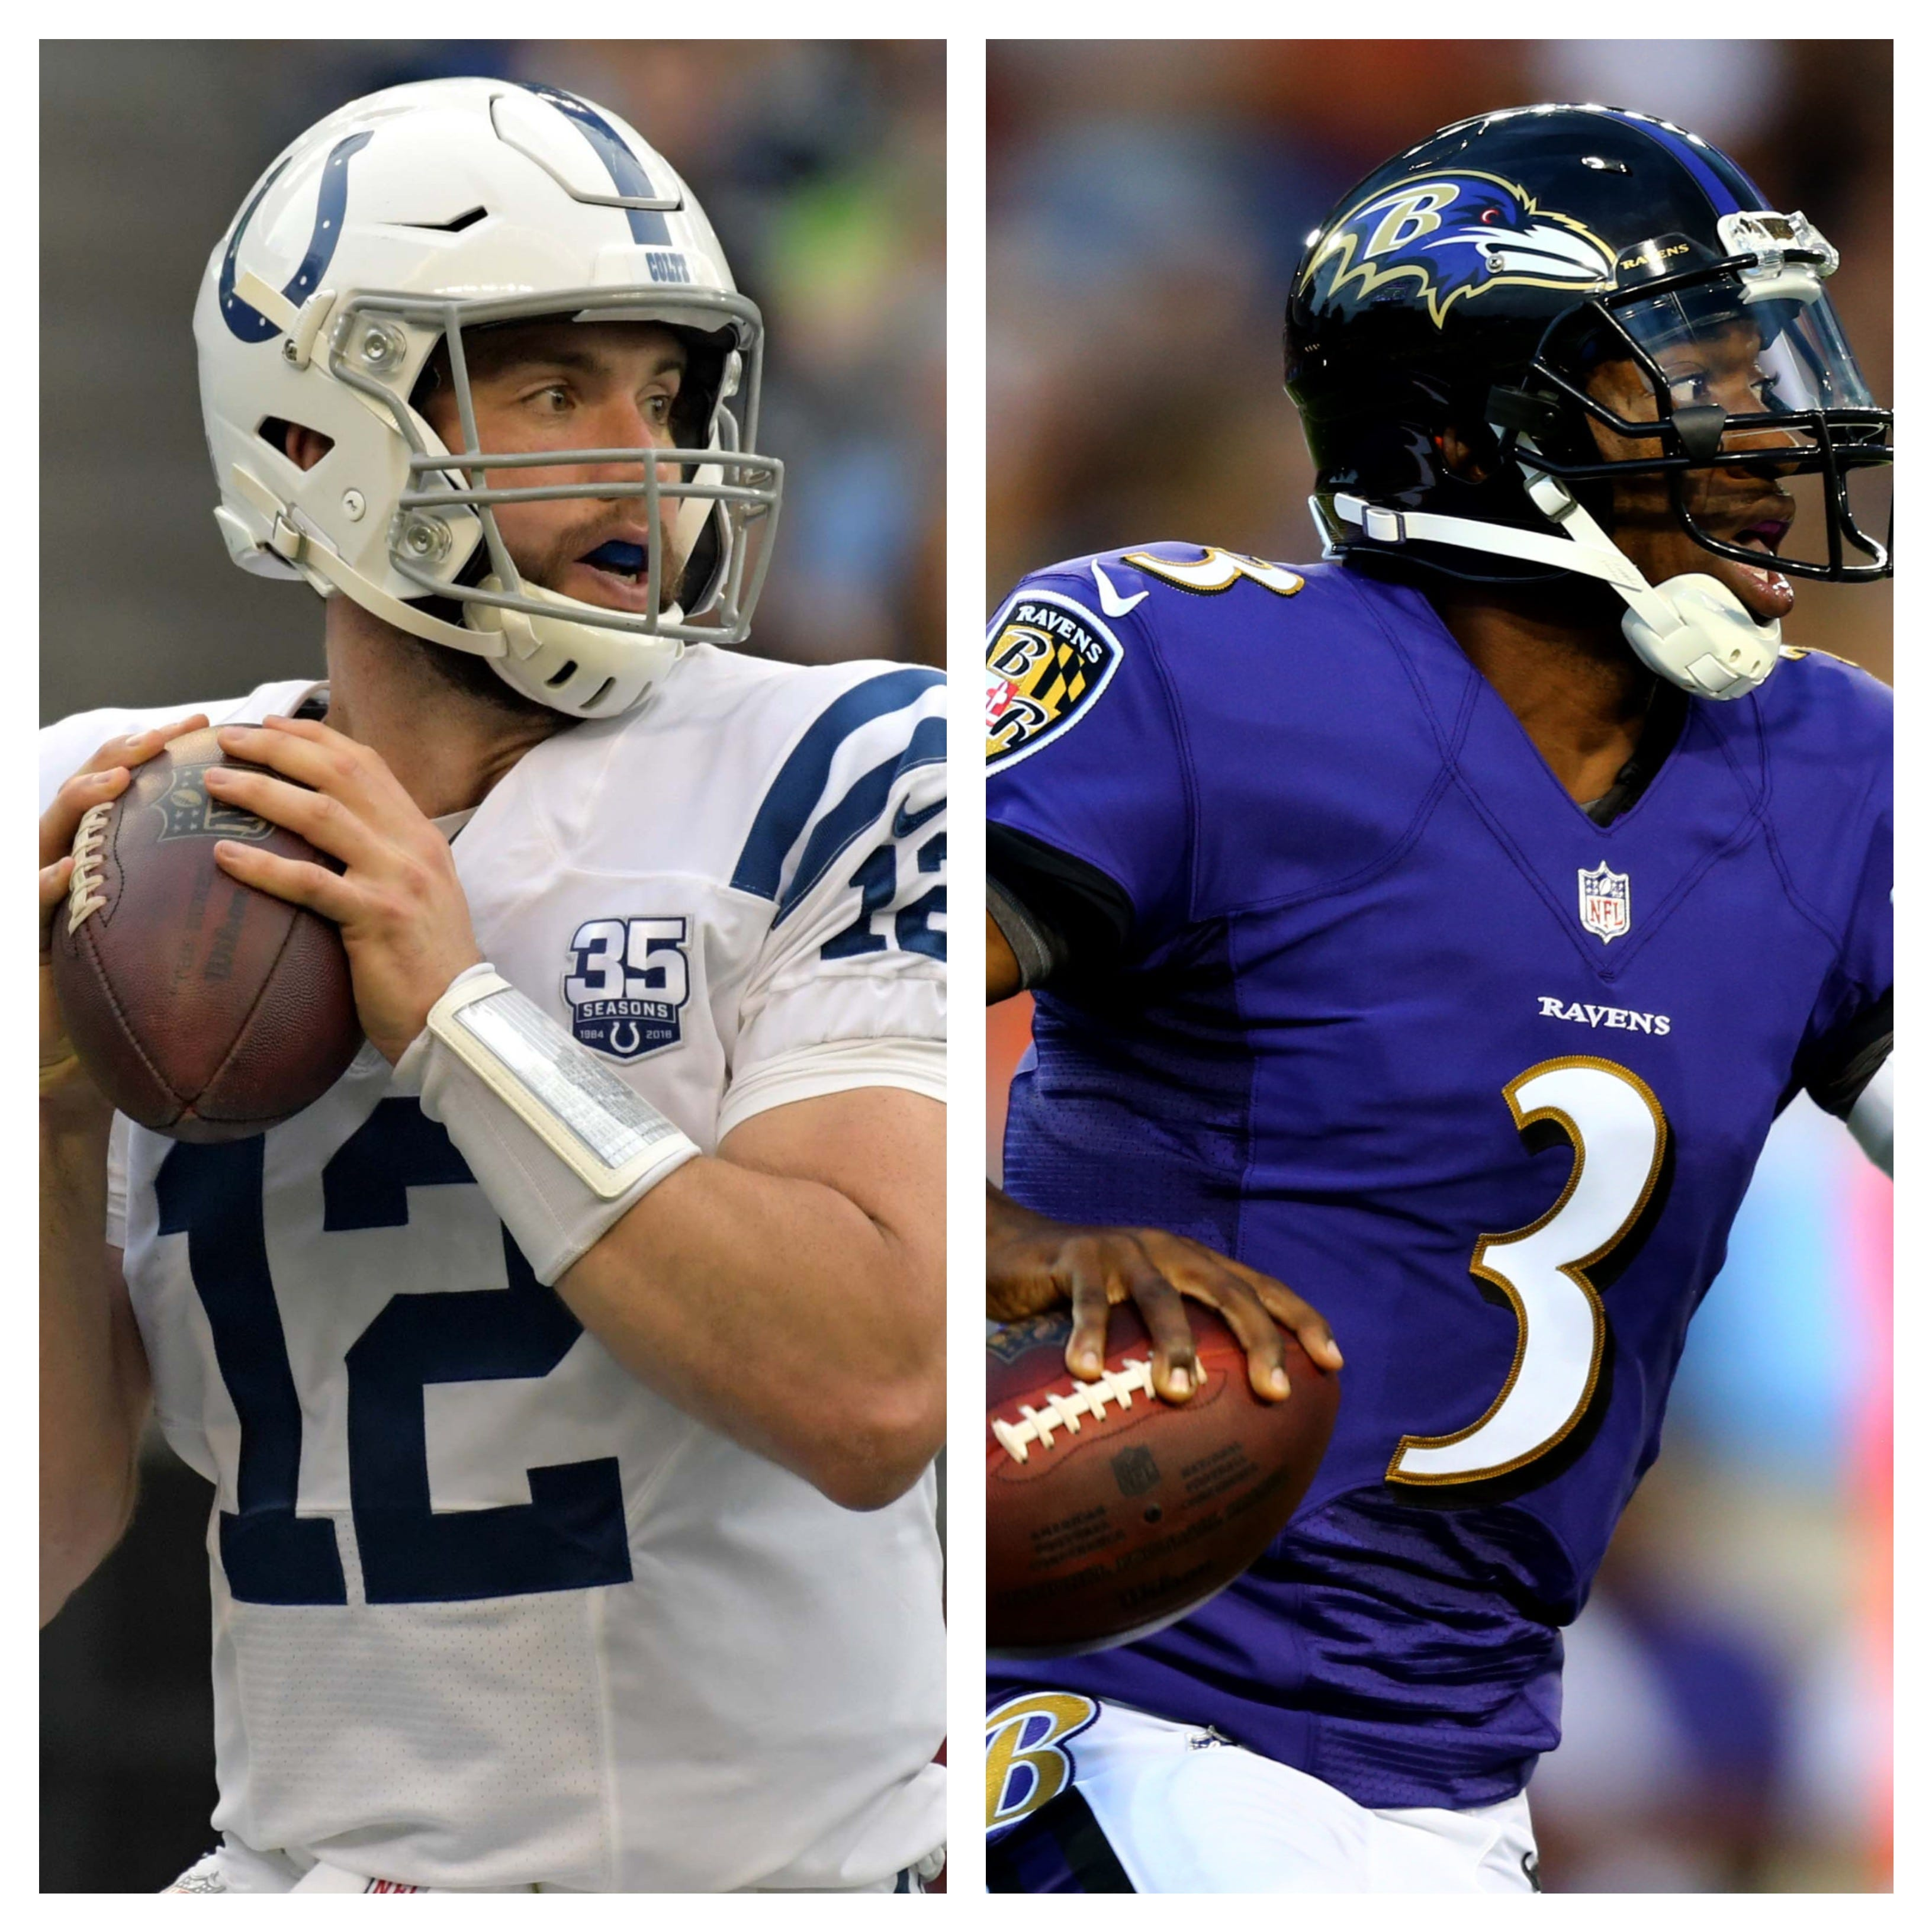 Luck and RGIII: Two top picks, each on the comeback trail